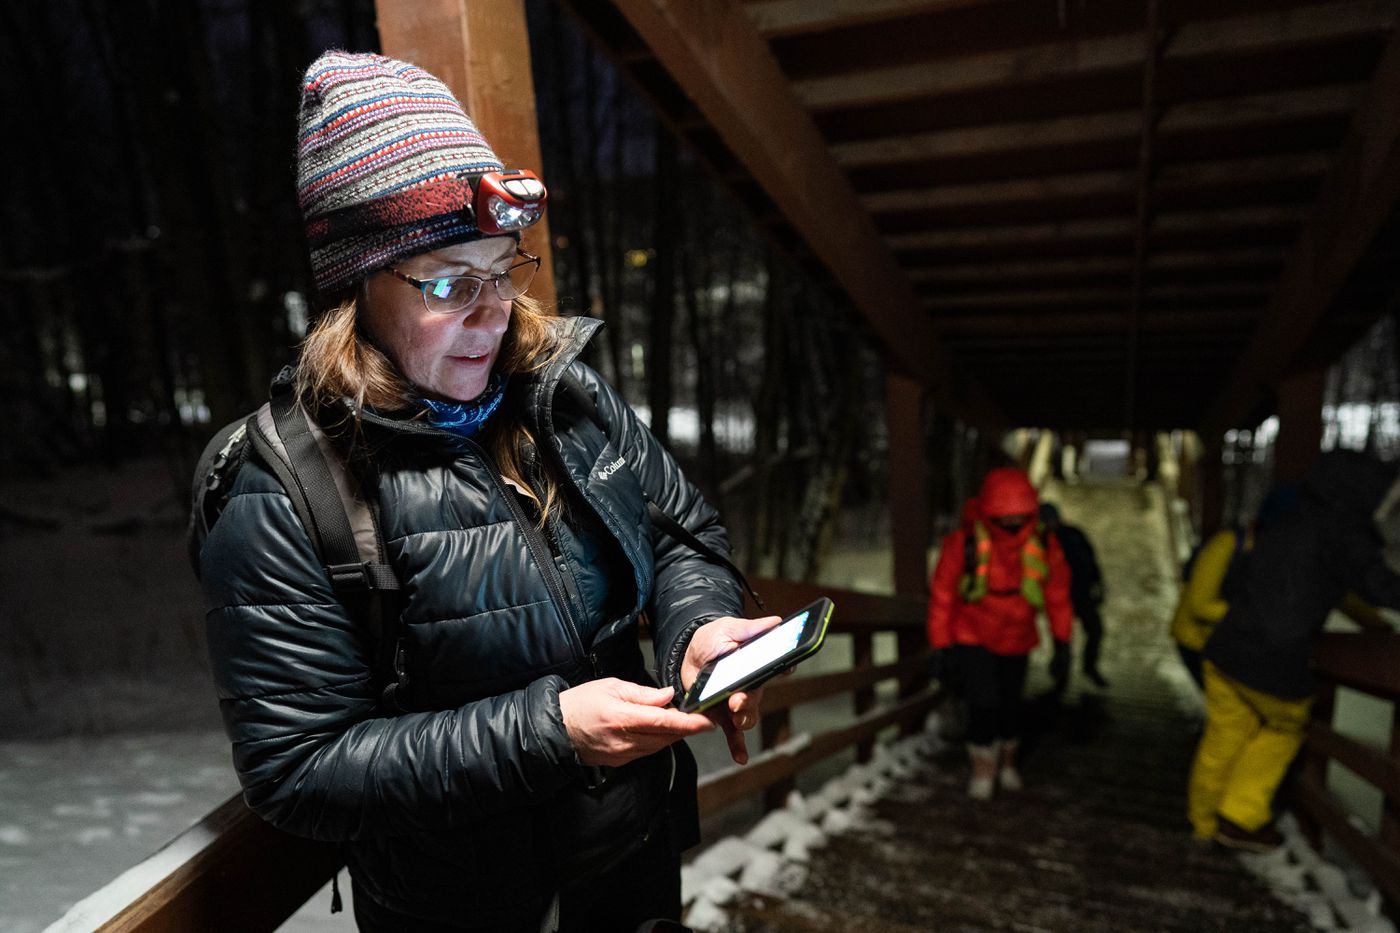 Nancy Burke, Anchorage's housing and homeless services coordinator, enters data into an app during the yearly Point in Time Count on Tuesday night, Jan. 28, 2020 near downtown. The count, required by the U.S. Department of Housing and Urban Development, aims to assist in measuring the extent of homelessness in Anchorage. (Loren Holmes / ADN)